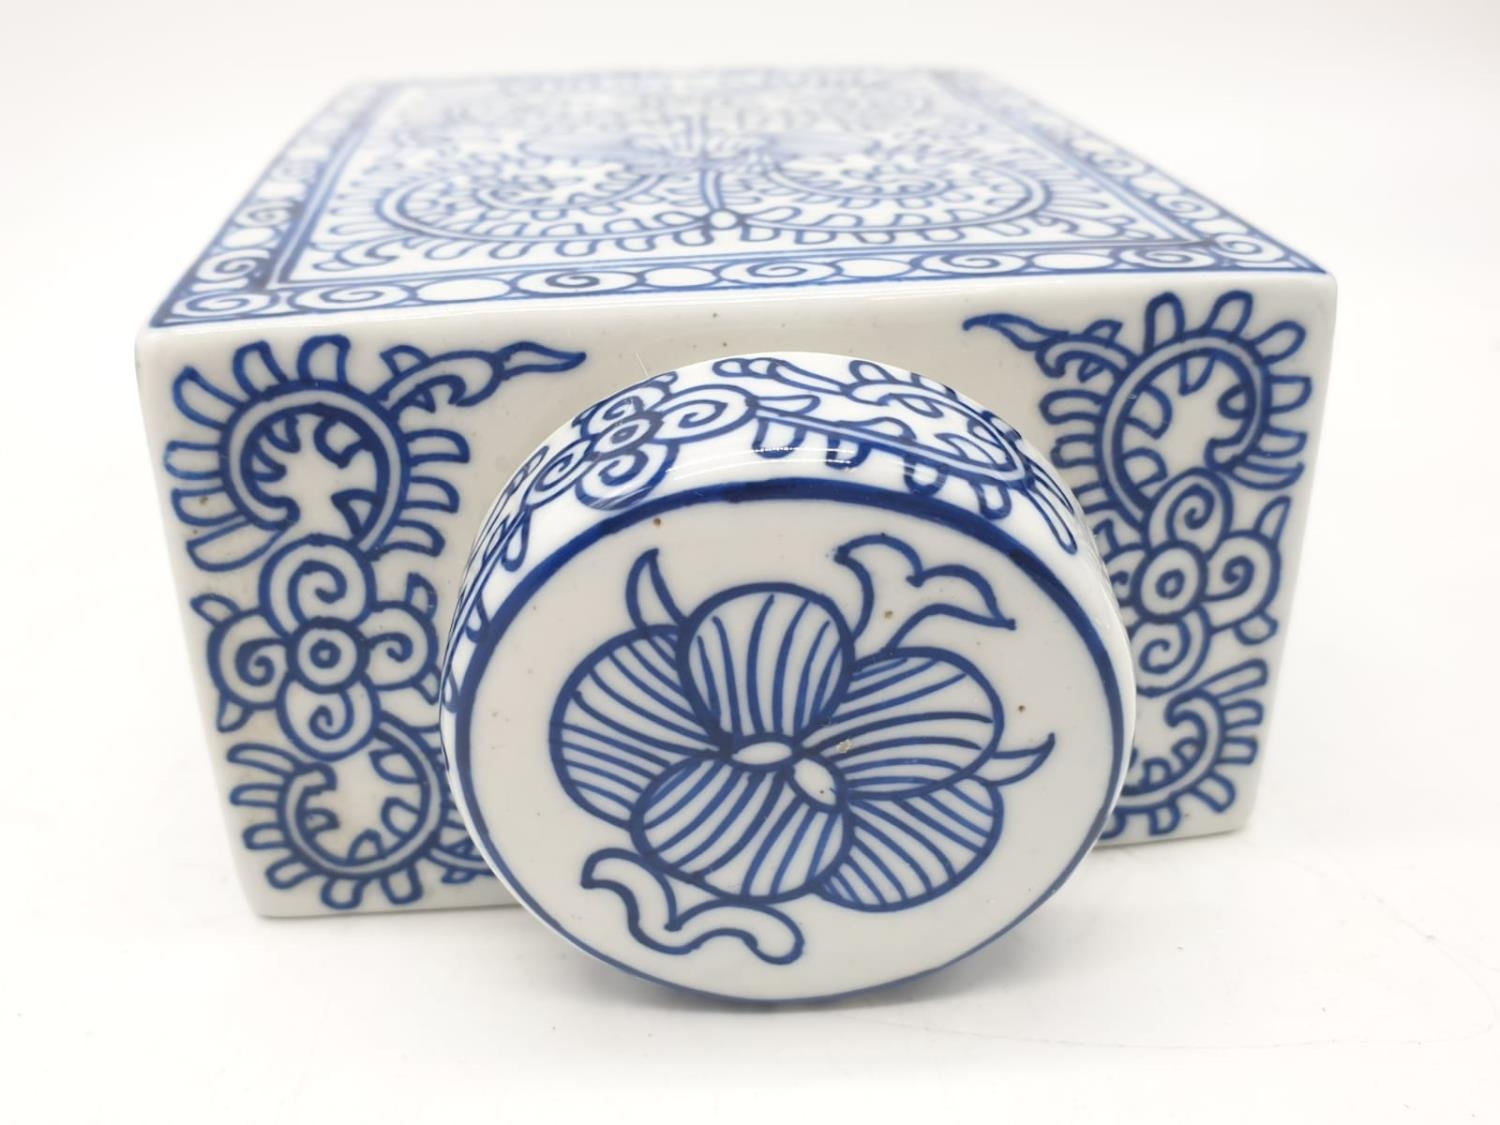 A Japanese, white and blue hand painted, rectangular, porcelain, storage jar, with lid. - Image 10 of 12